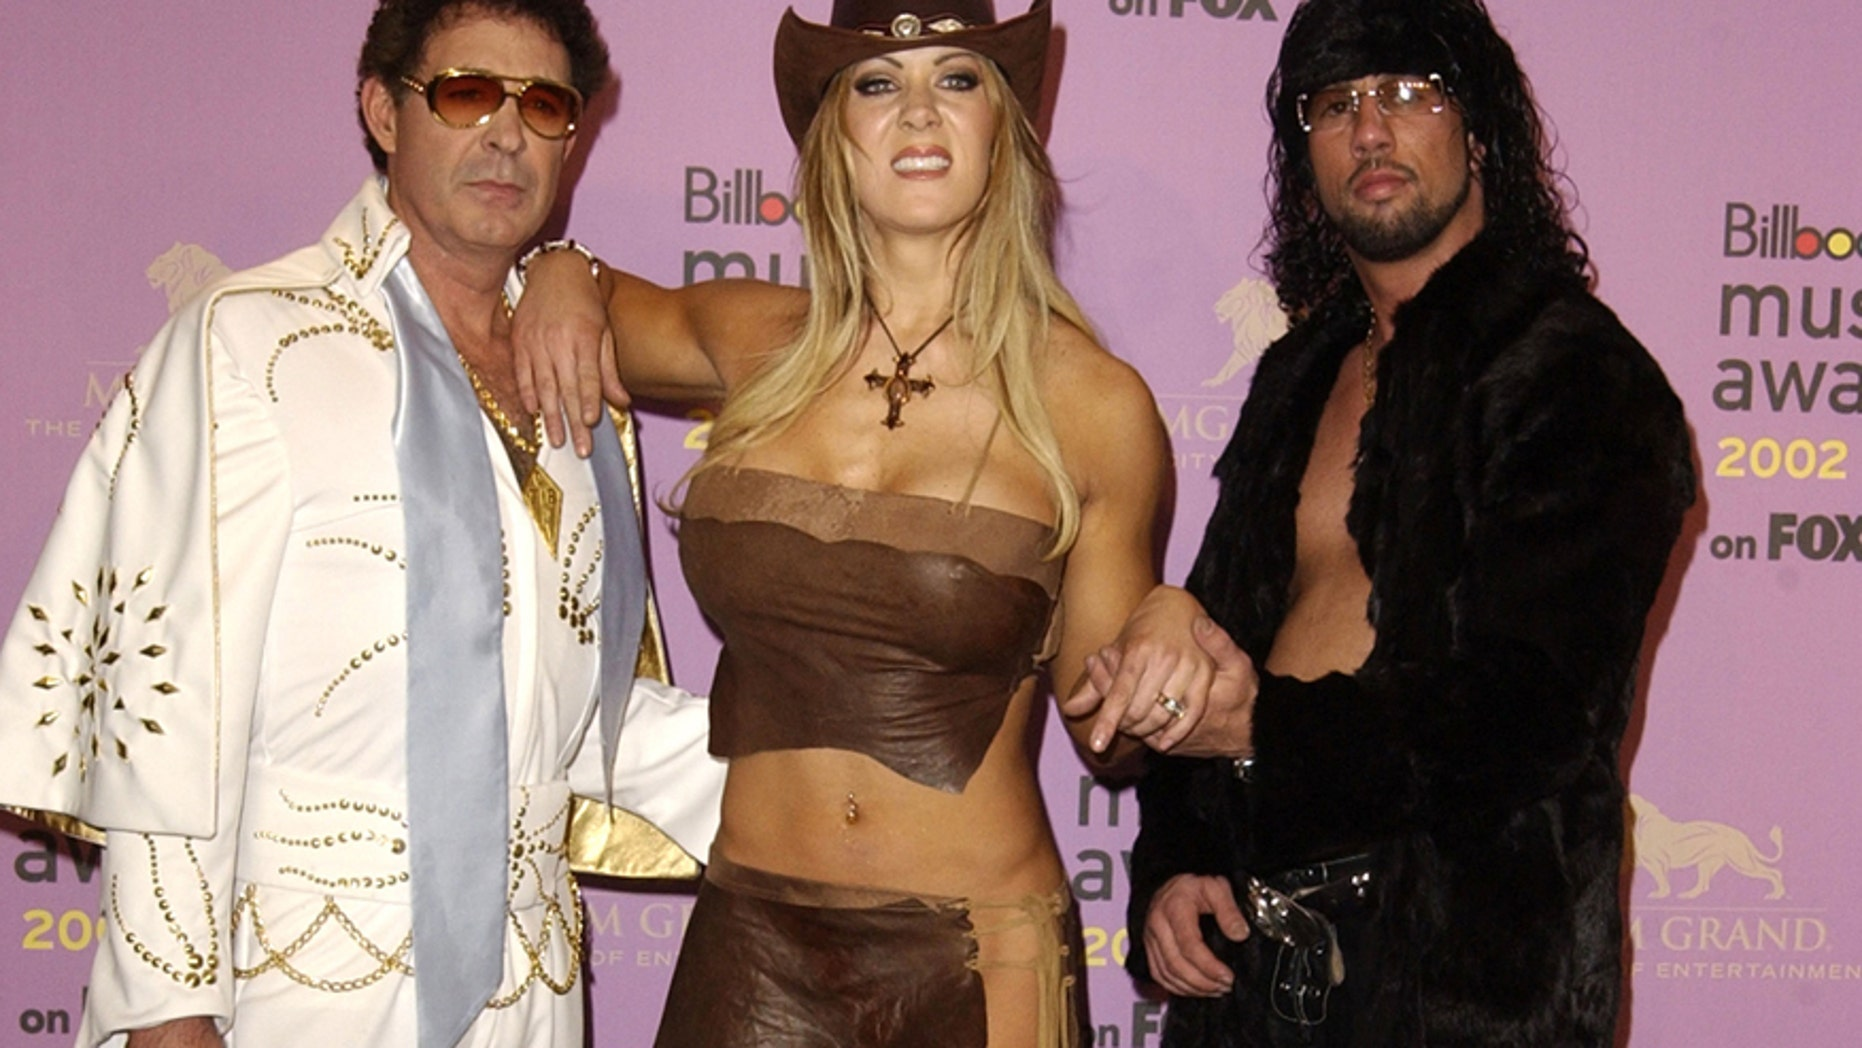 """From l-r: Barry Williams, Joanie """"Chyna"""" Laurer and Sean Waltman aka: X PAC at the MGM Grand Arena in Las Vegas, Nevada, December 9, 2002."""